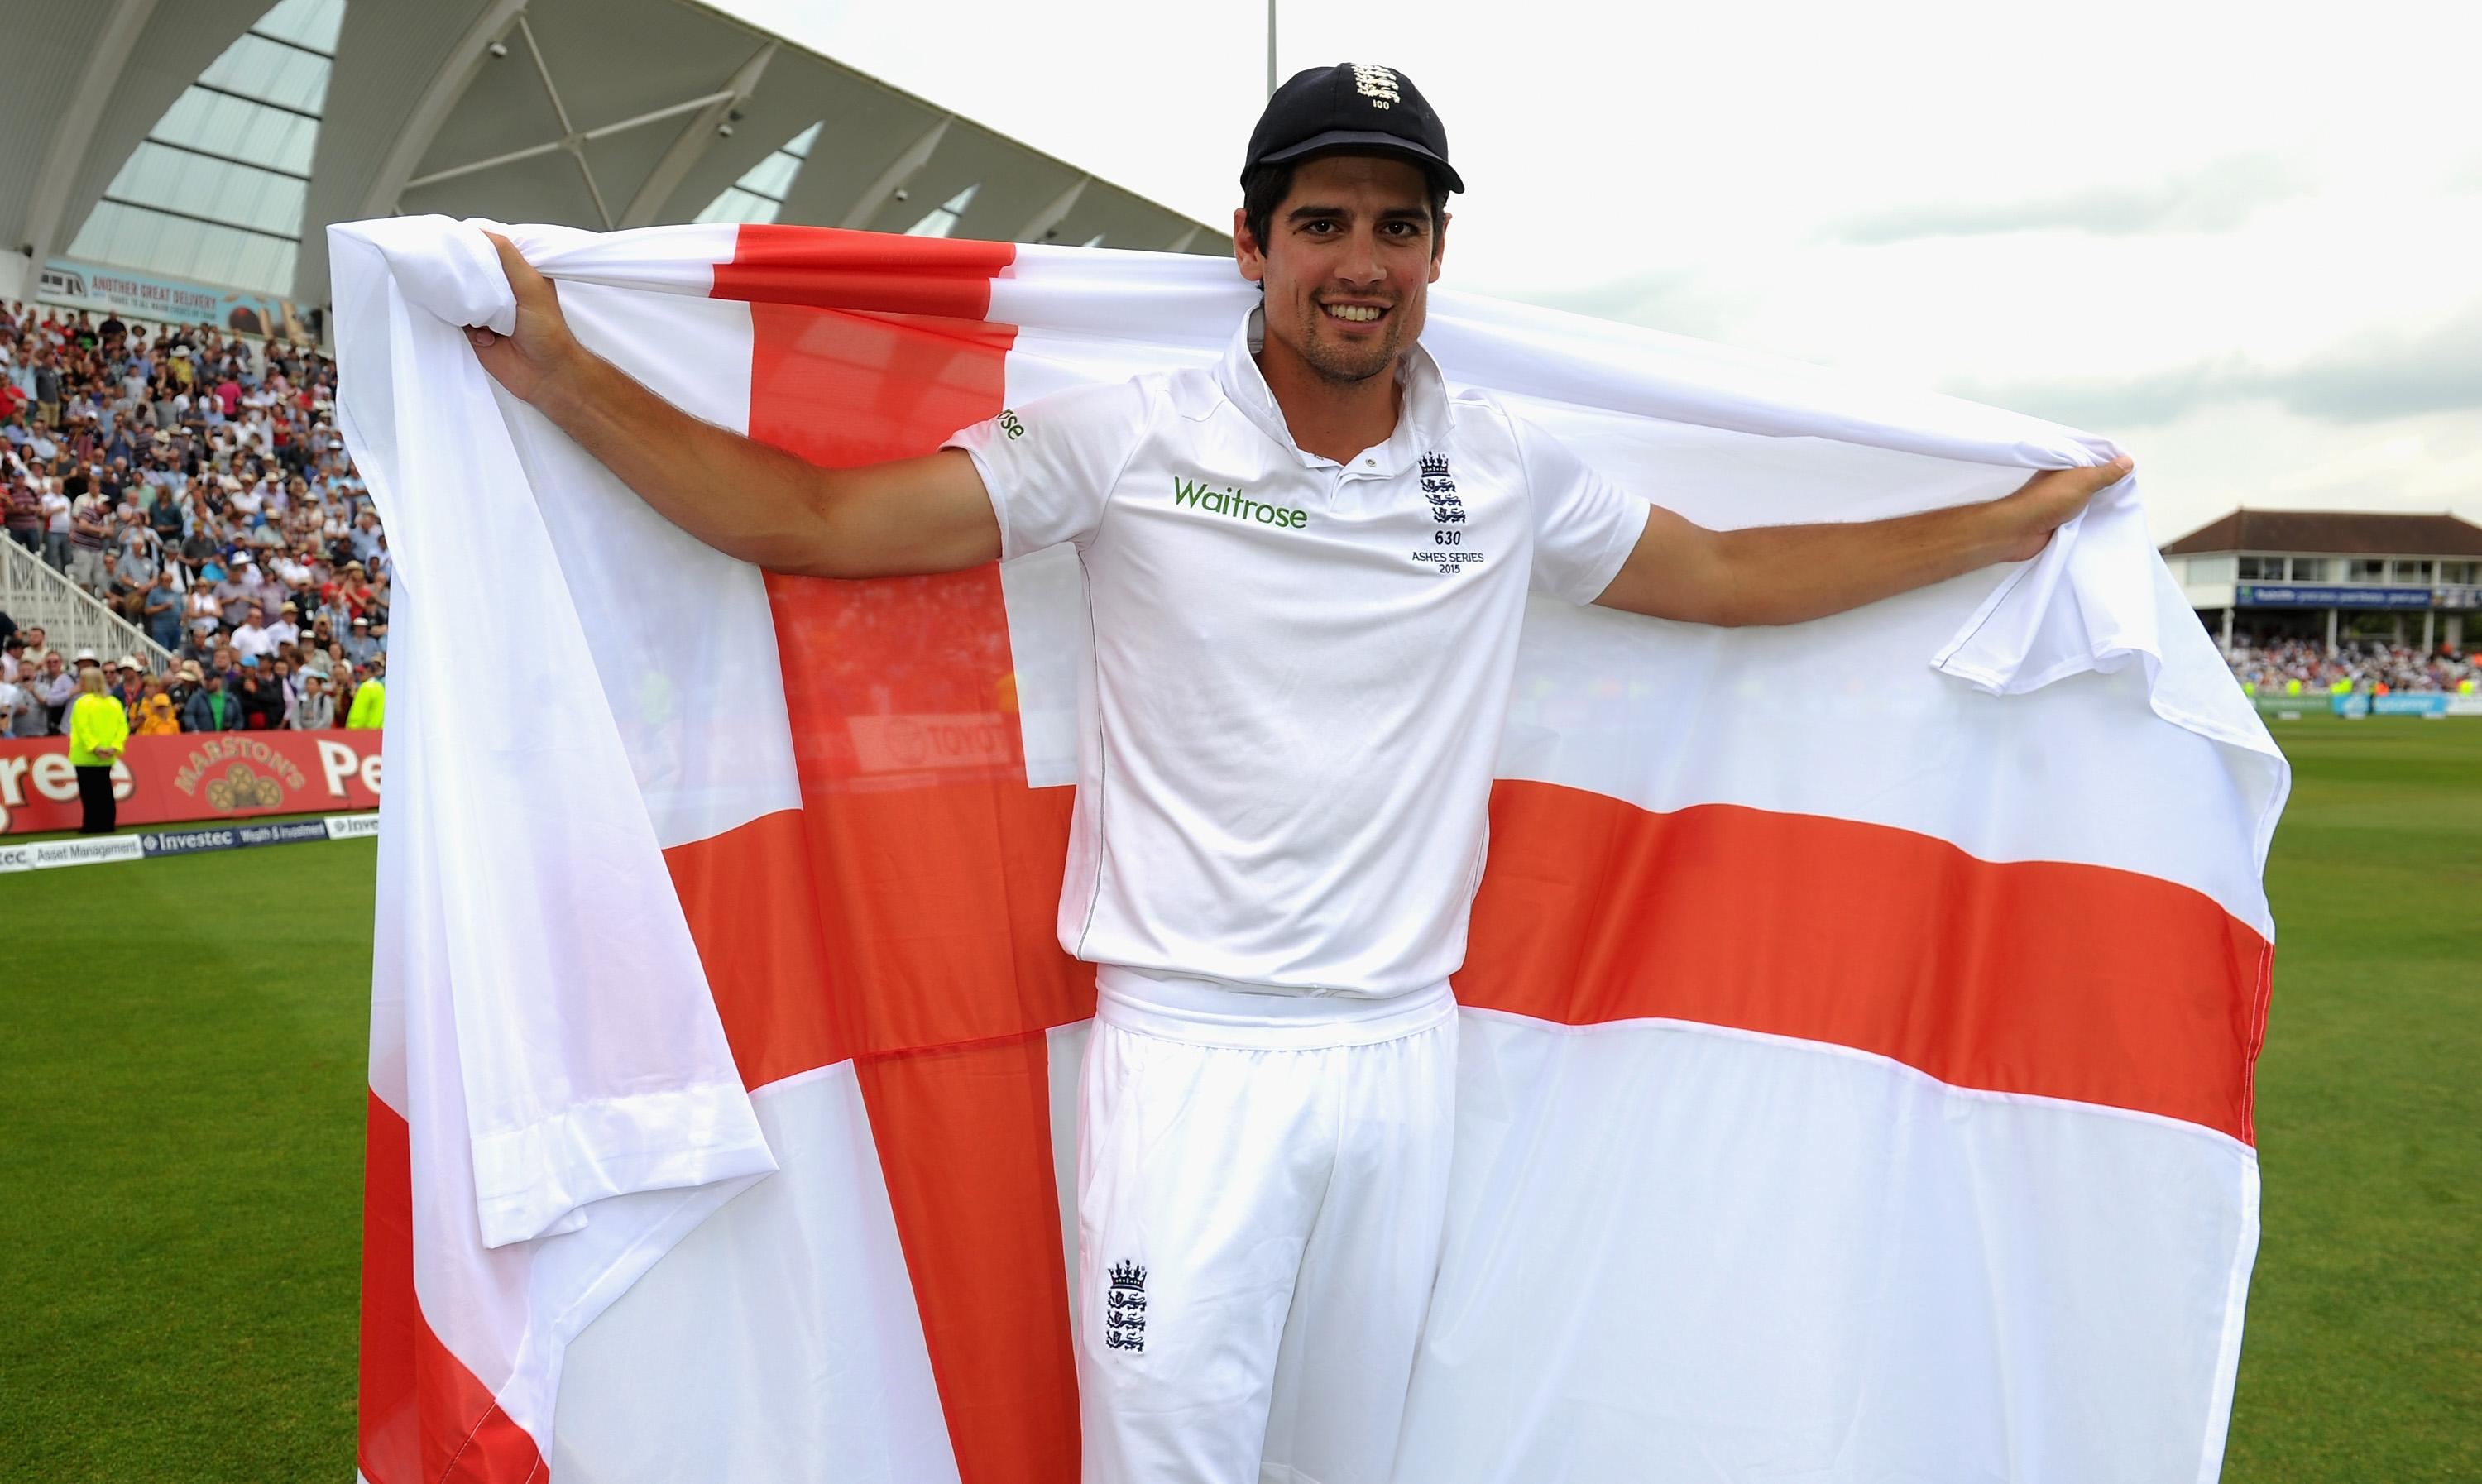 Alastair Cook is set for a knighthood in the New Year, according to reports